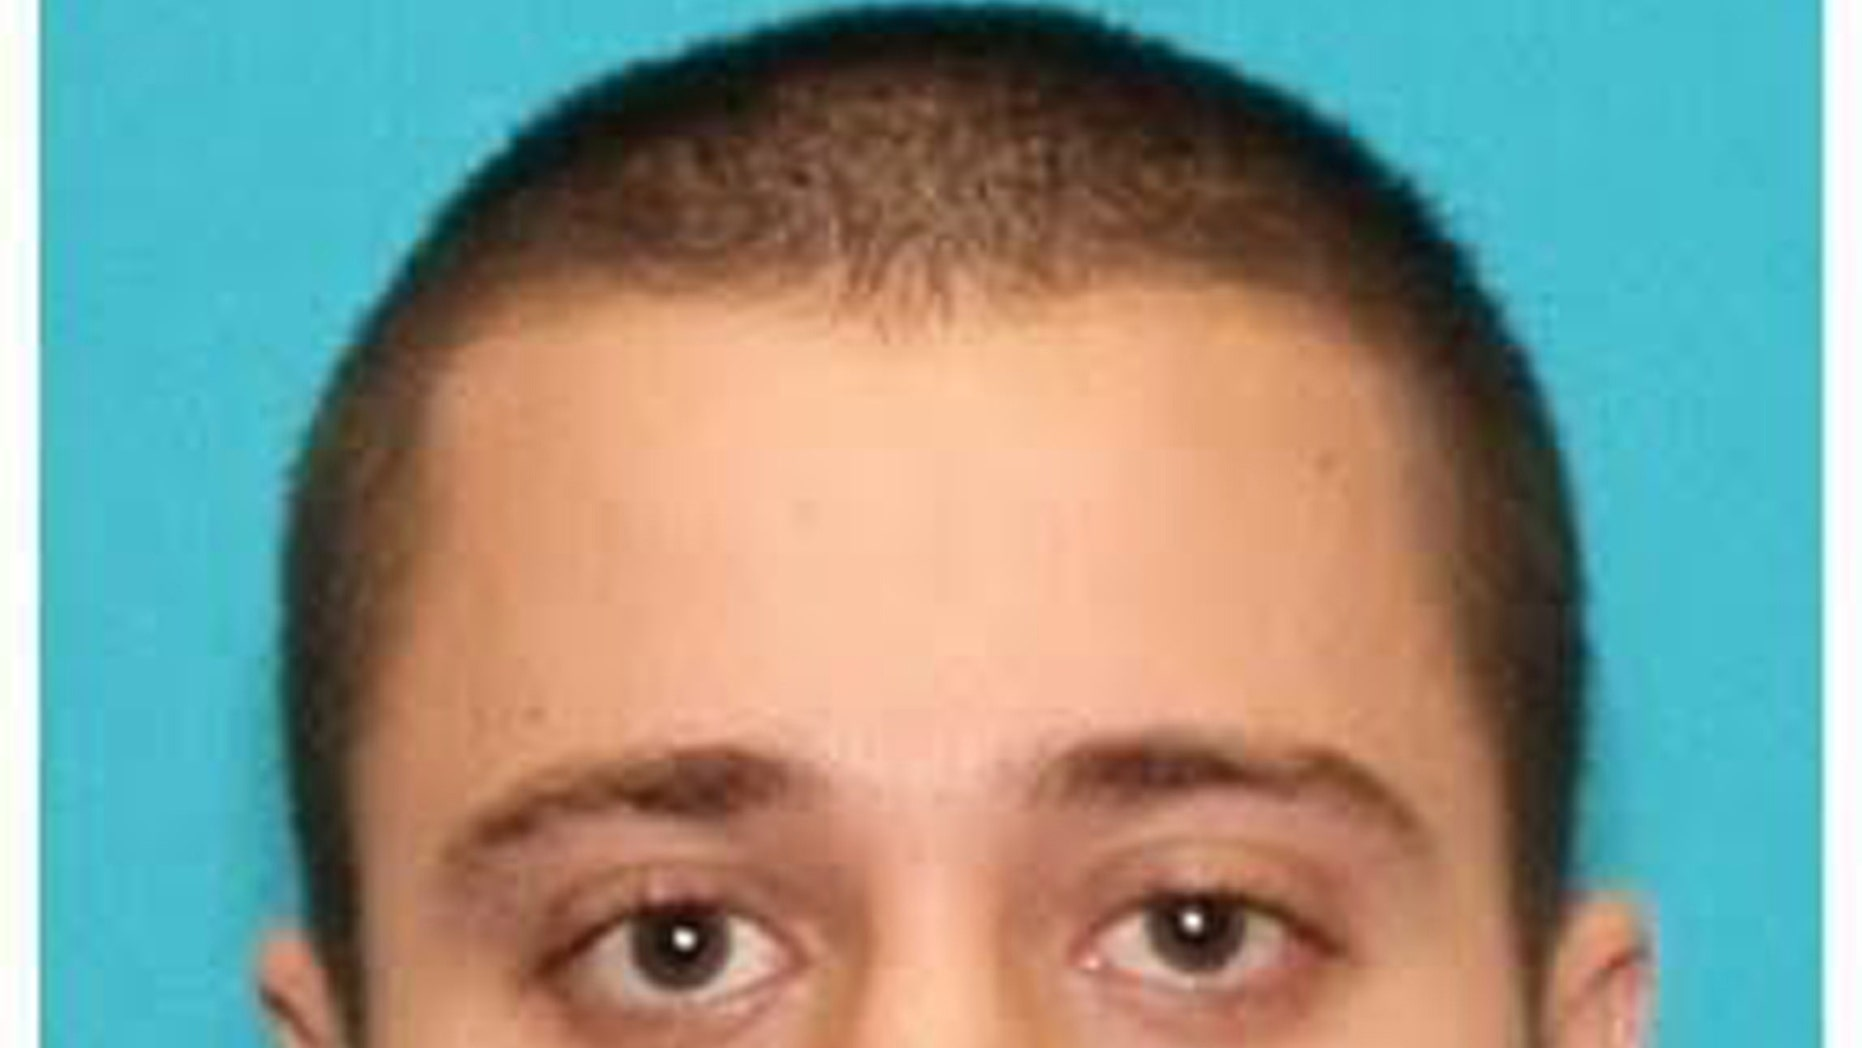 This undated photo provided by the FBI shows Paul Ciancia. Ciancia, the gunman who killed a federal airport screener and wounded three others during a shooting rampage at Los Angeles International Airport three years ago, has agreed to plead guilty to all counts in a deal that spares him the death penalty.